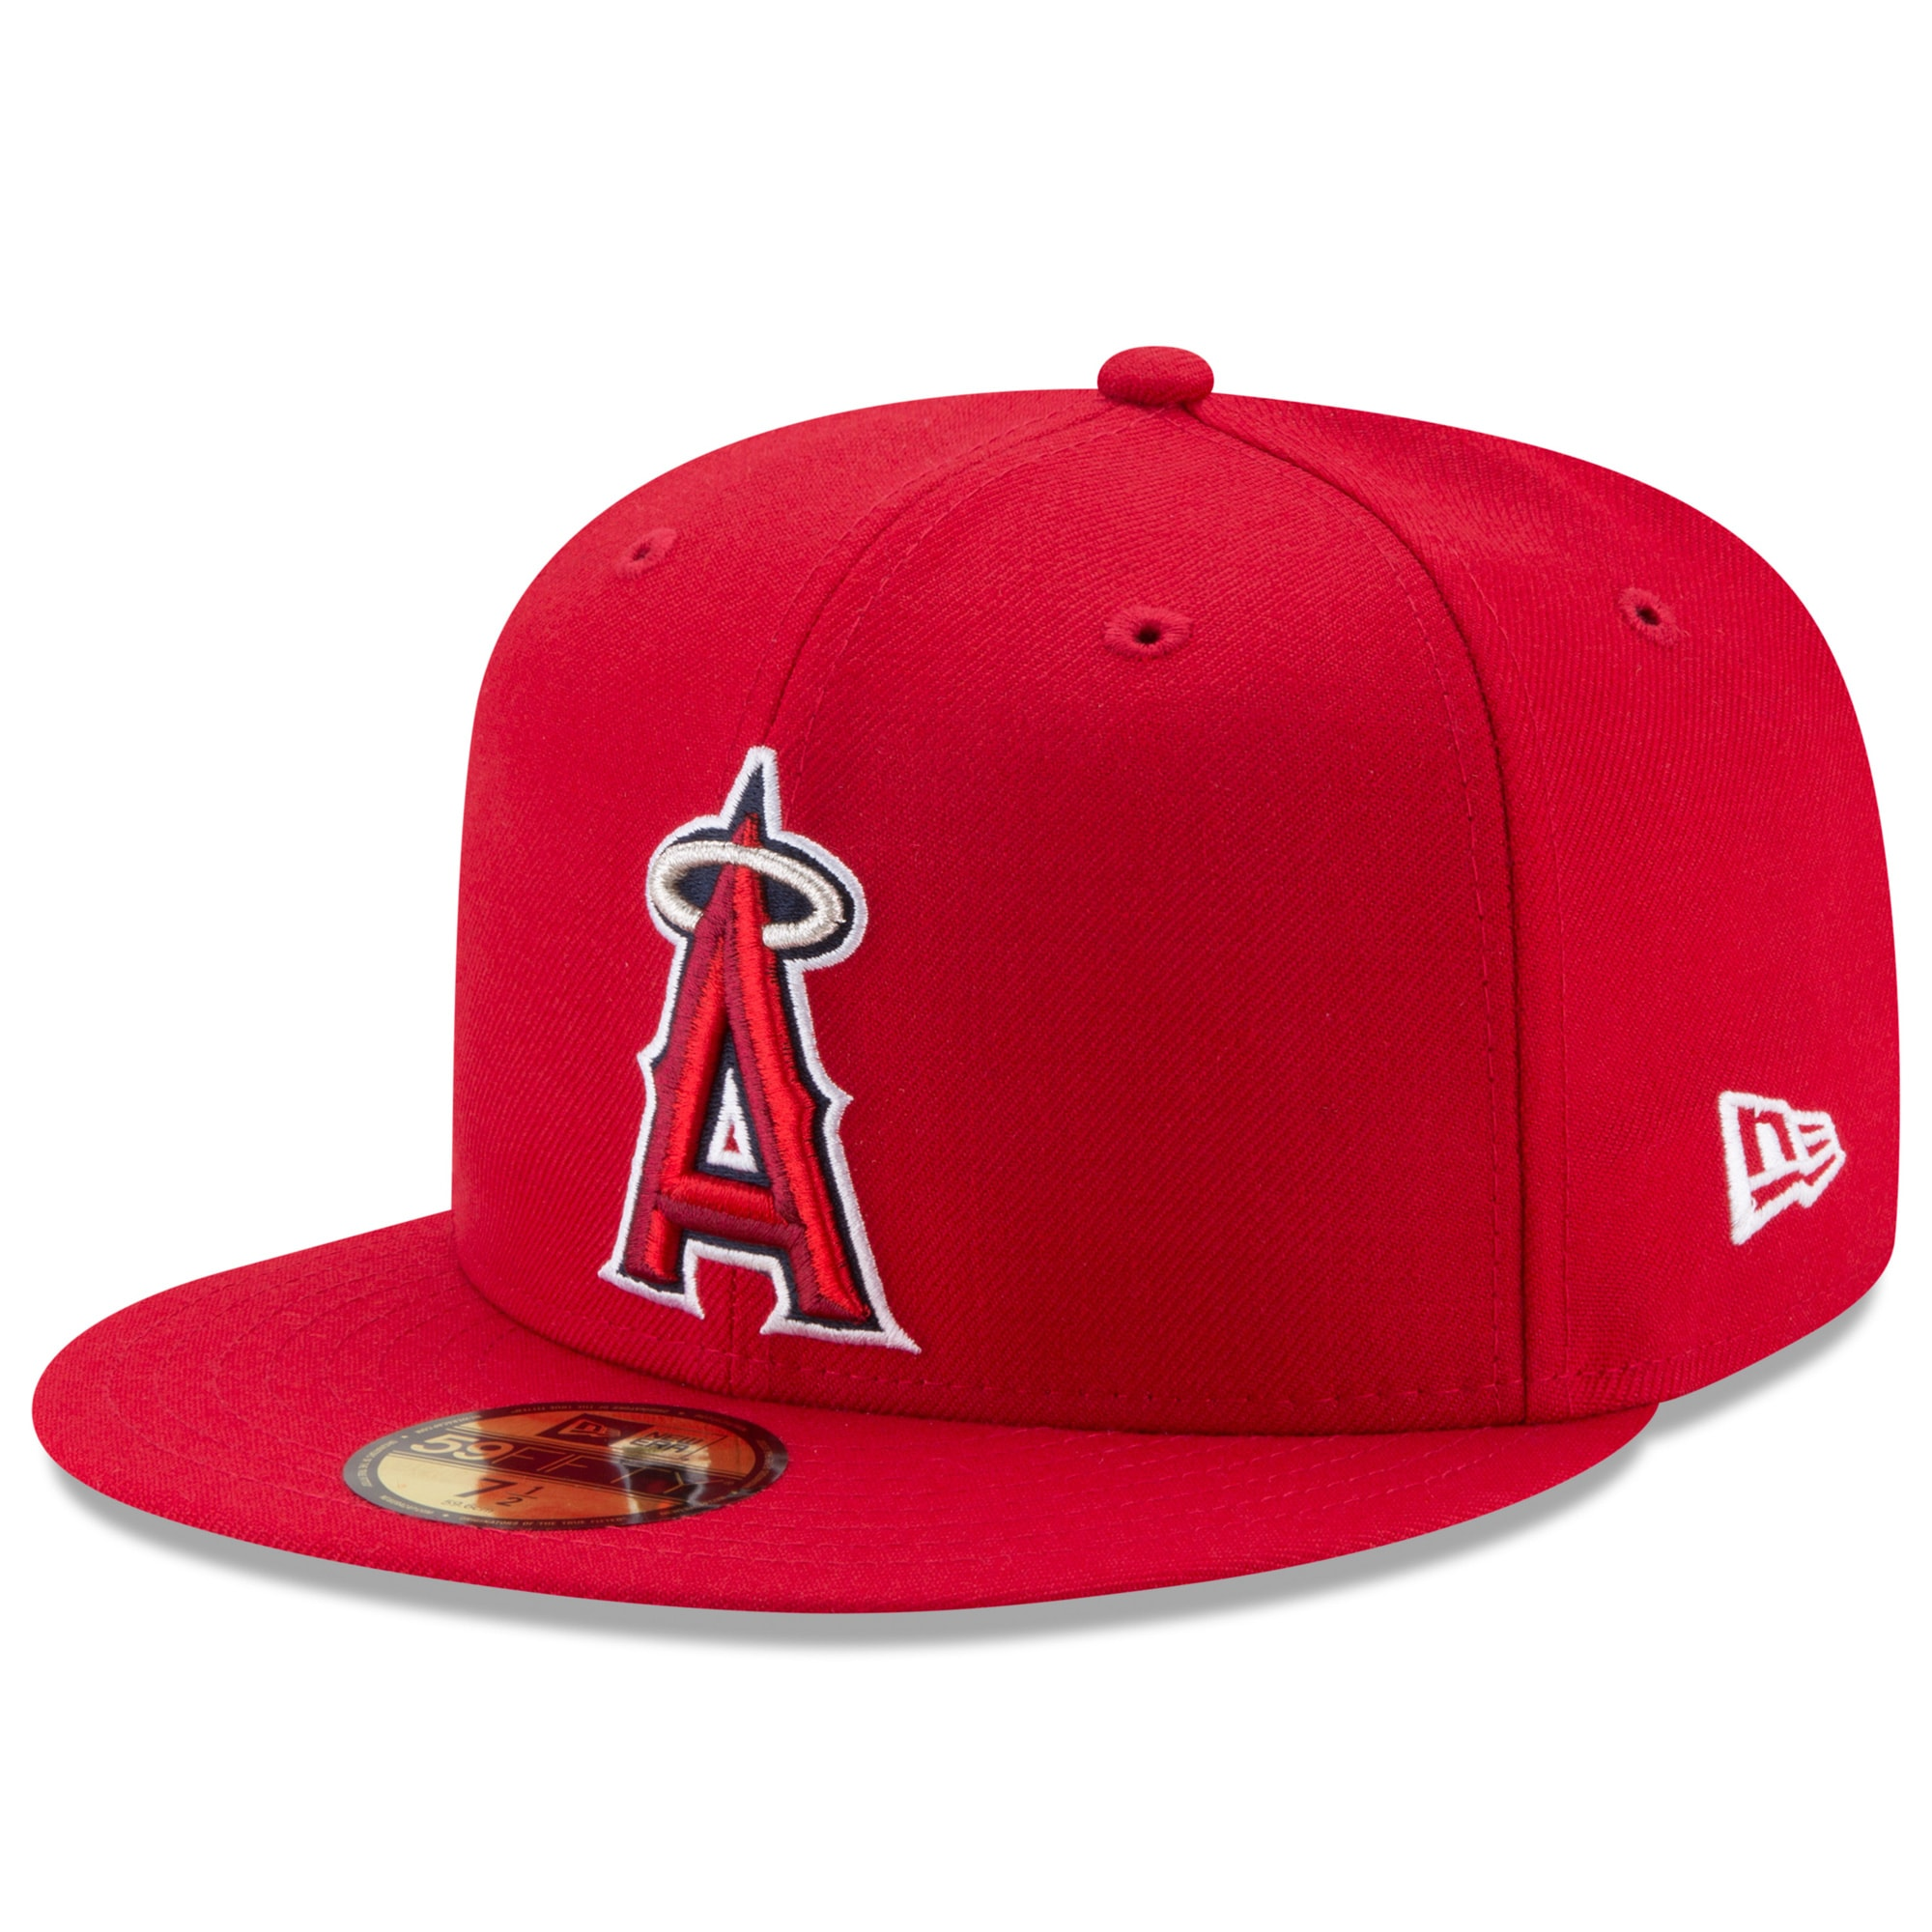 Los Angeles Angels New Era Game Authentic Collection On-Field 59FIFTY Fitted Hat - Red